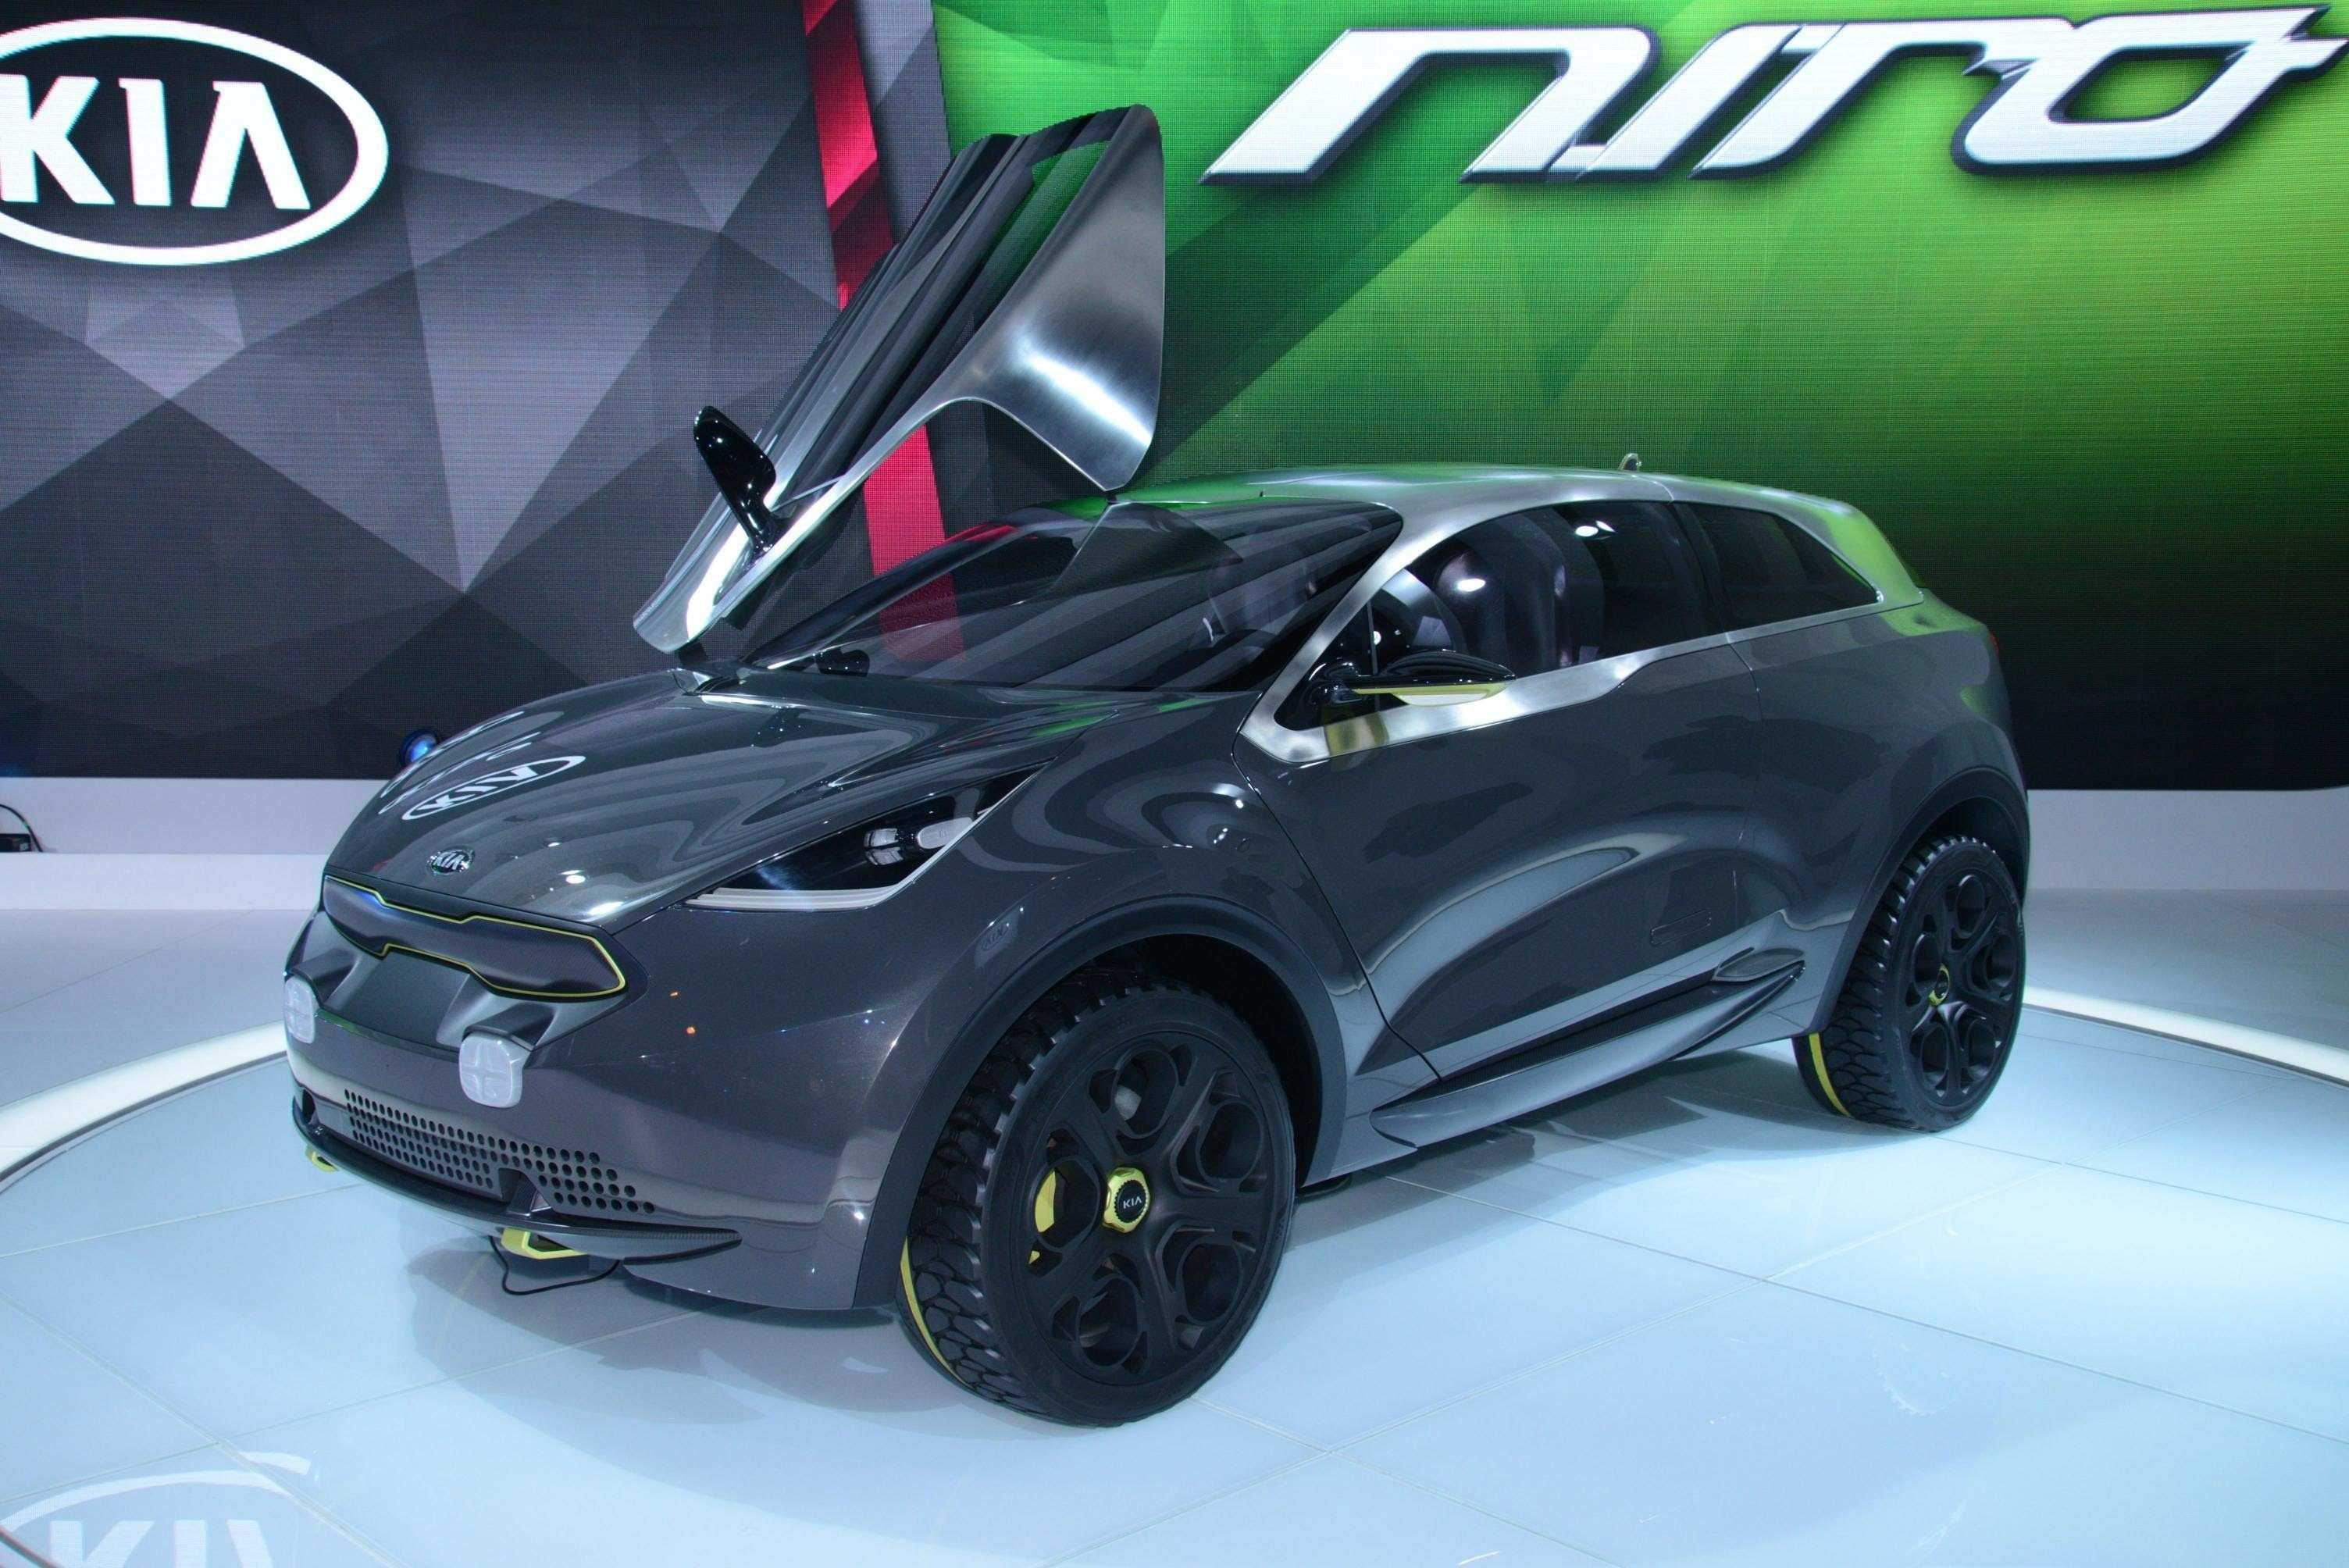 46 Great 2020 Kia Niro Specs and Review for 2020 Kia Niro